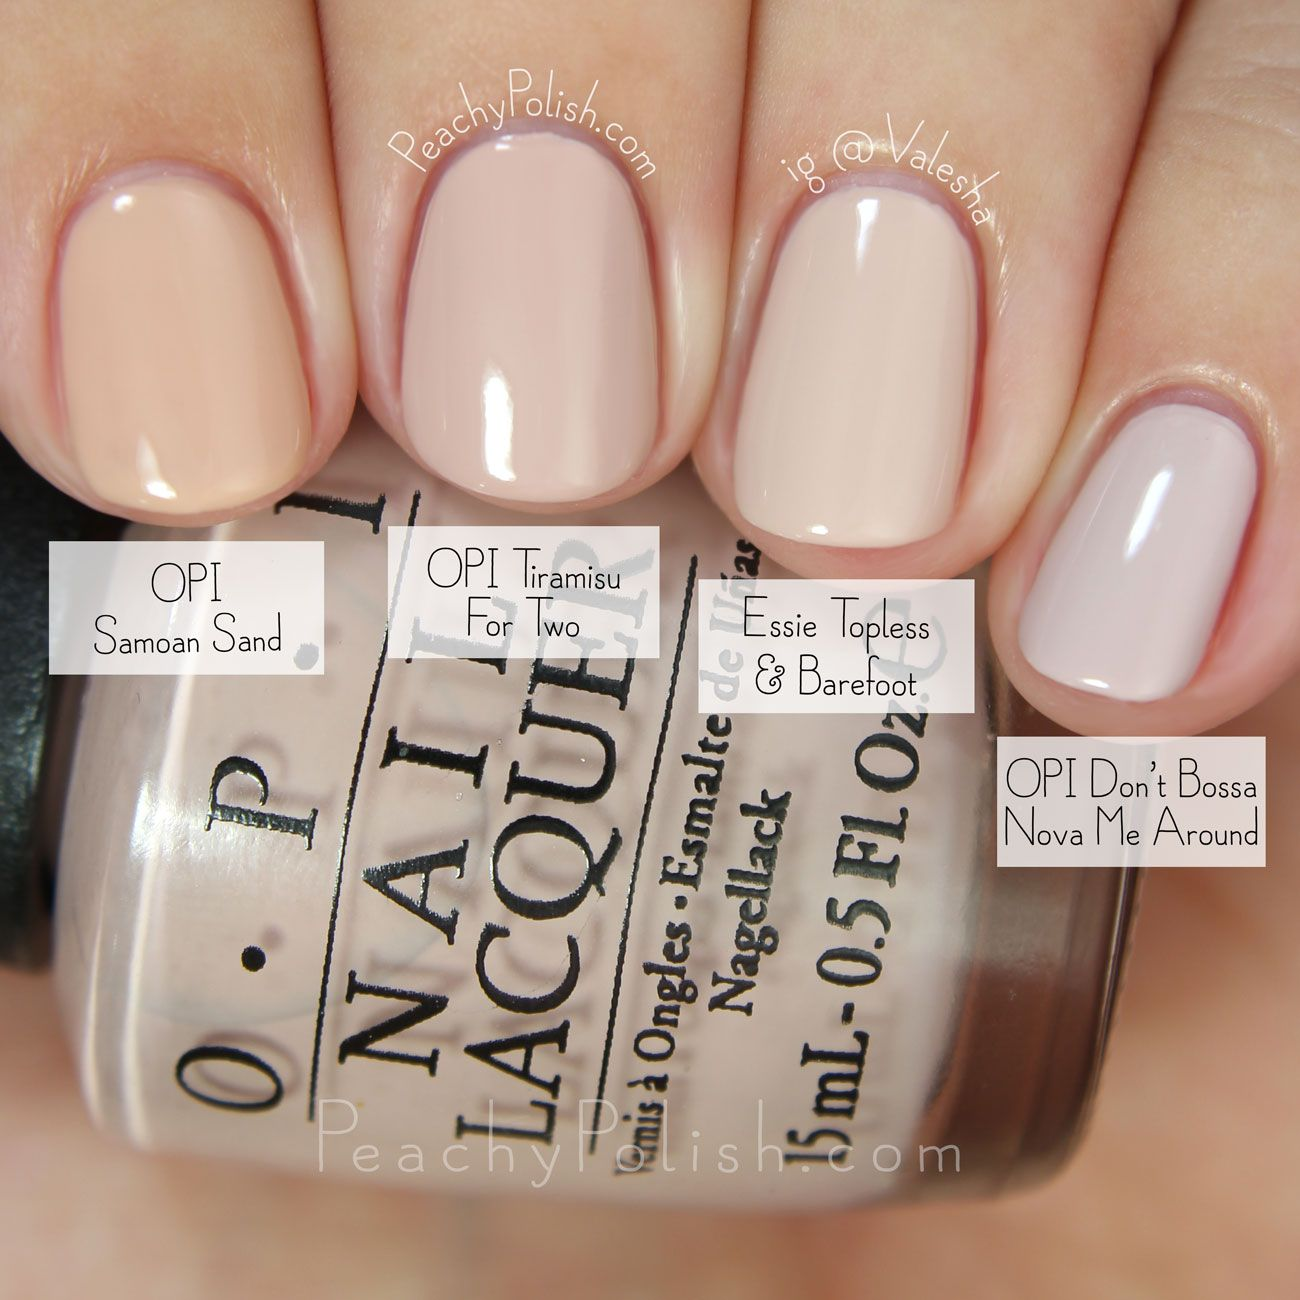 OPI Tiramisu For Two Comparison | Fall 2015 Venice Collection ...